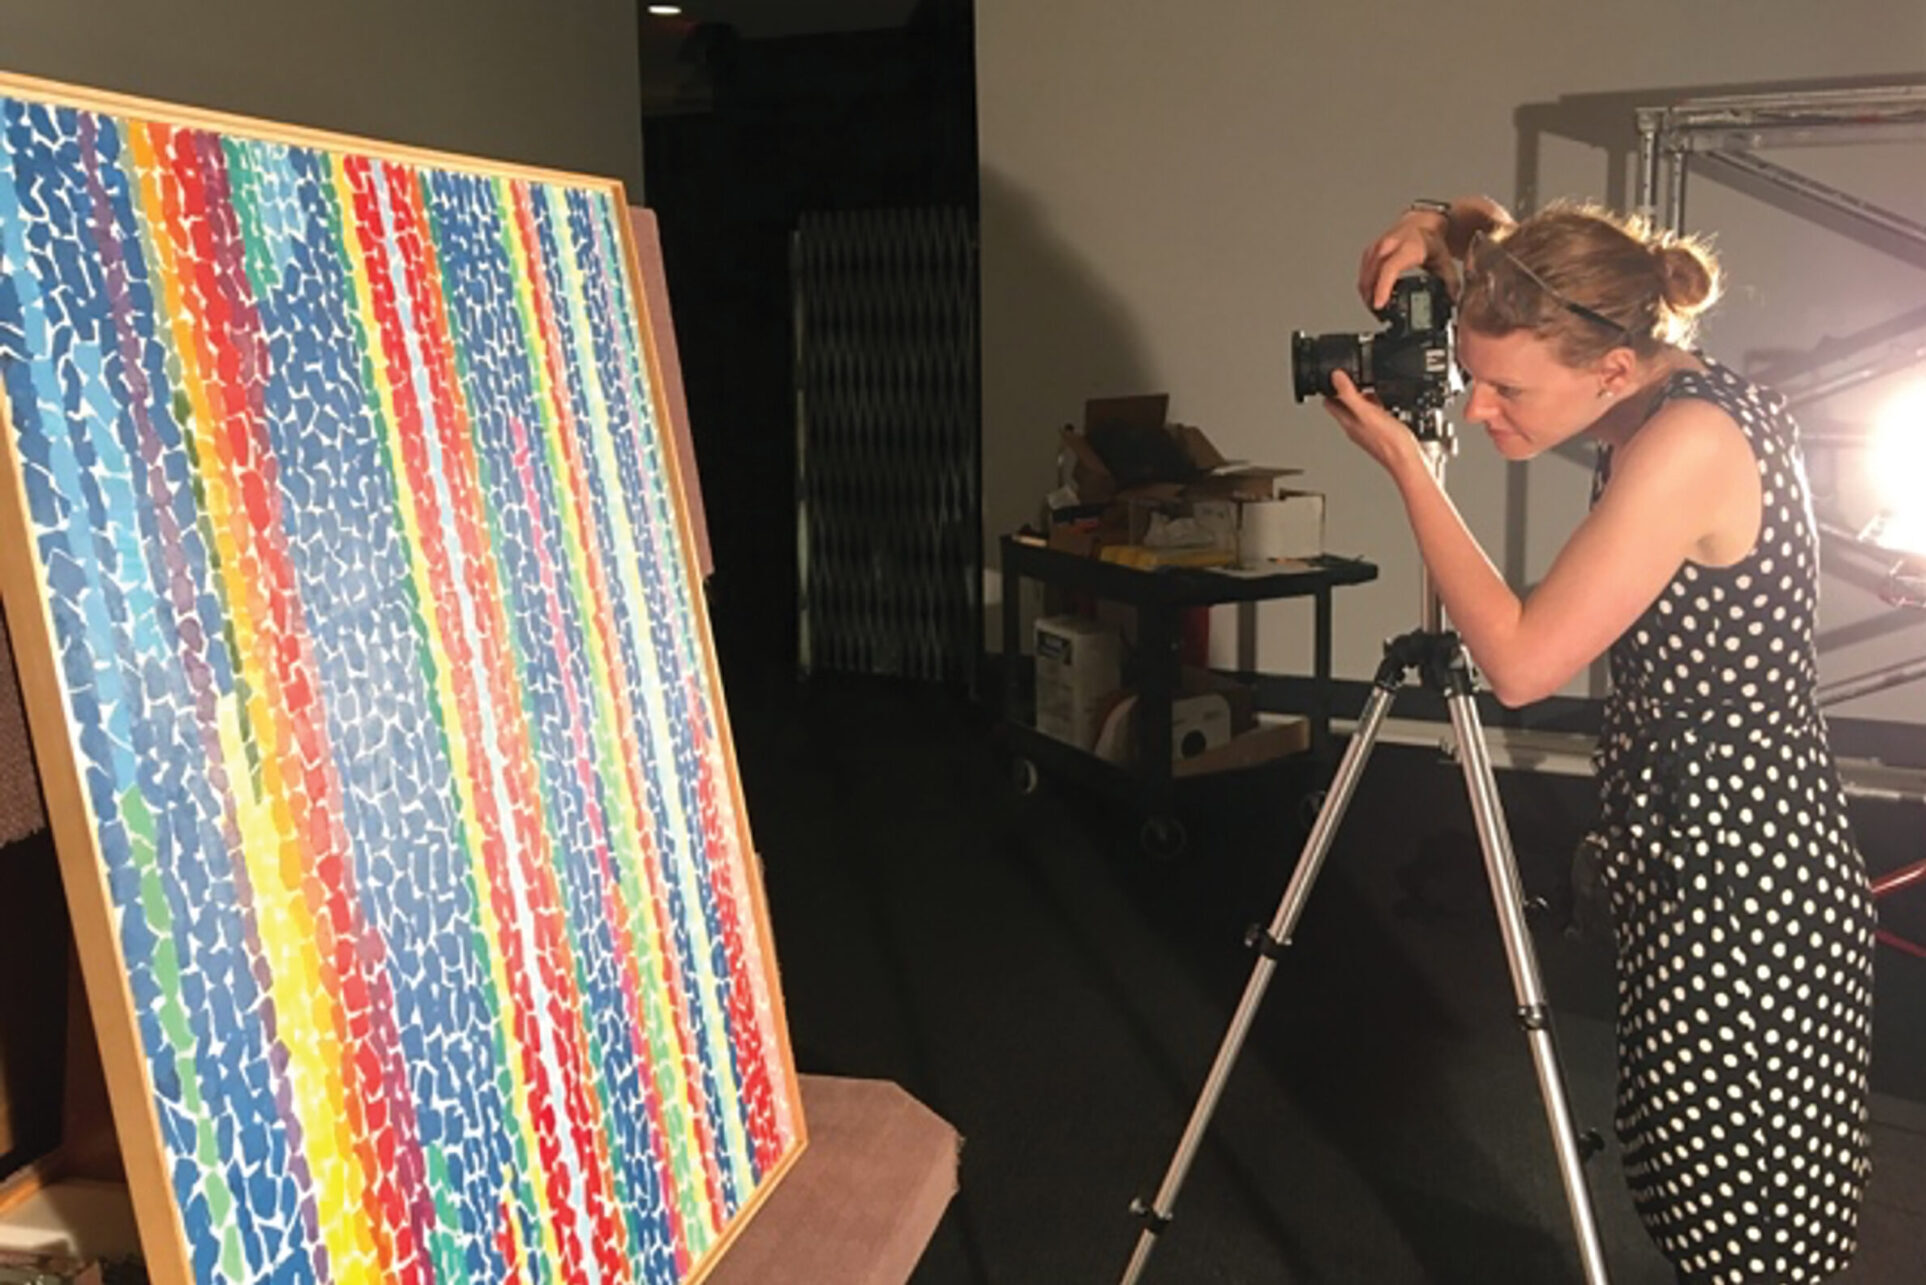 Woman taking a photograph of a colorful striped painting using a camera mounted on a tripod.